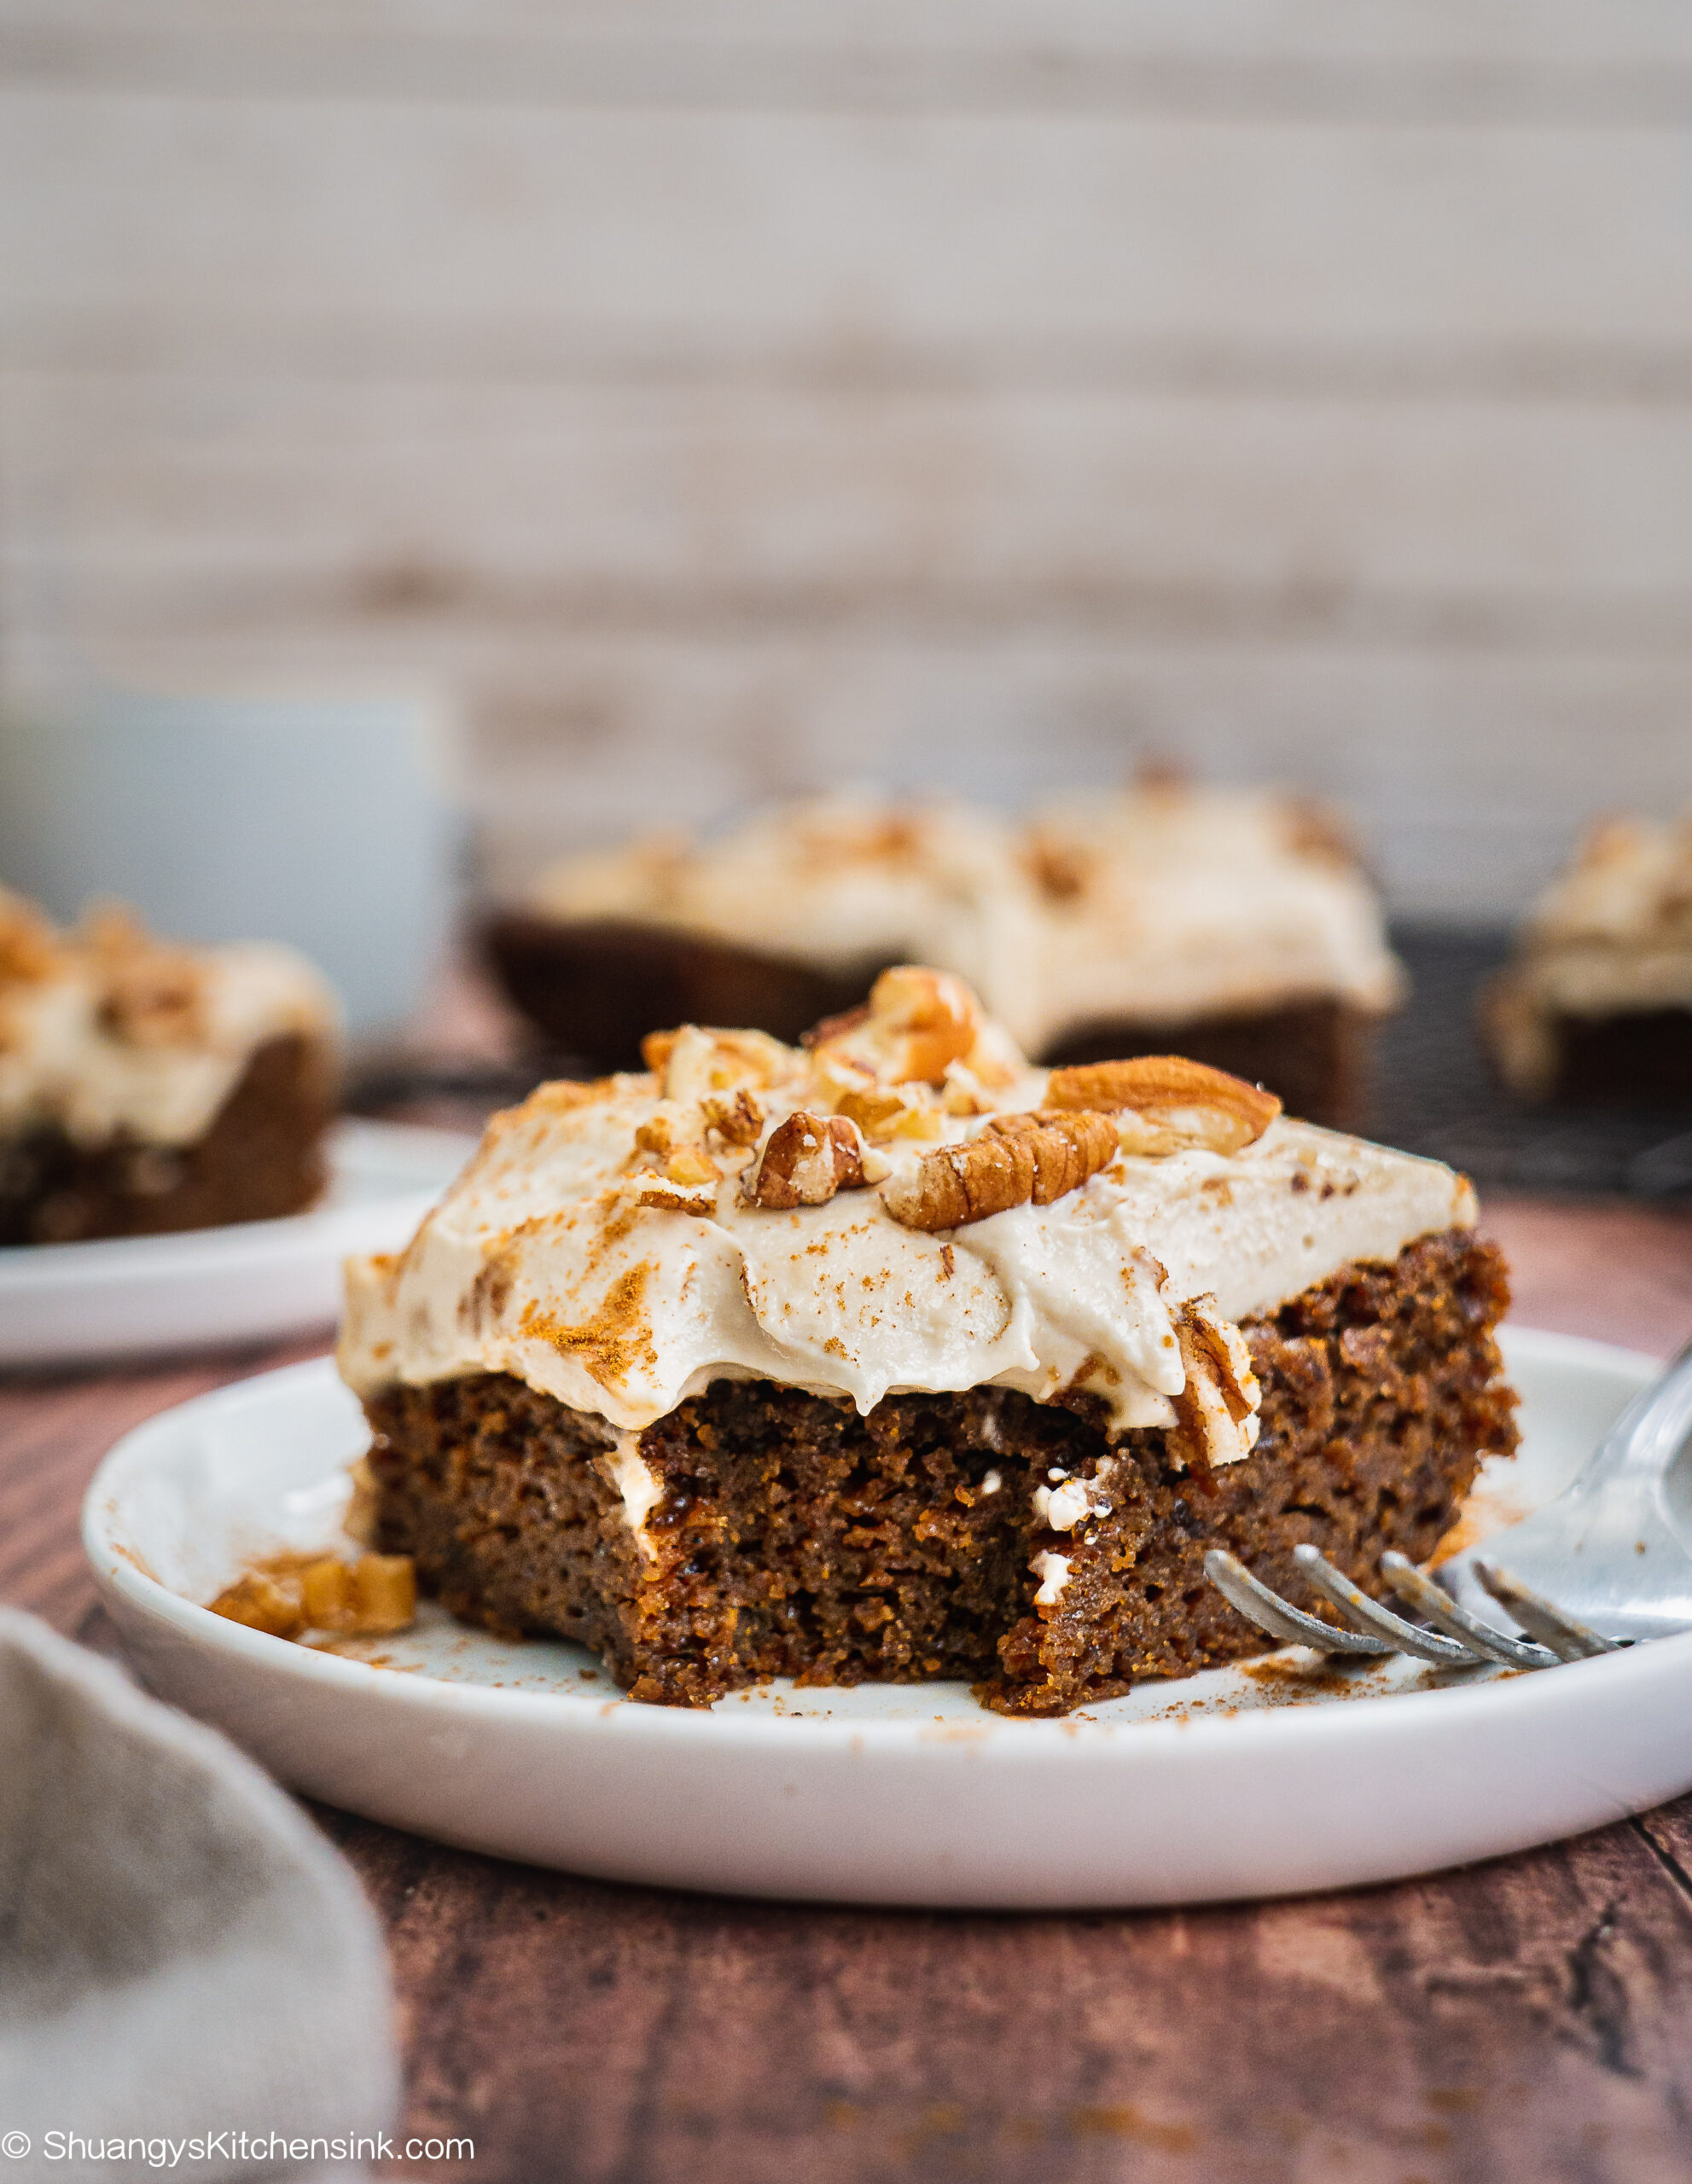 A piece of vegan gingerbread cake with cashew cream frosting and crumbled pecans on top. There is bite in the middle and a fork on the side. There are more gingerbread cake in the background.